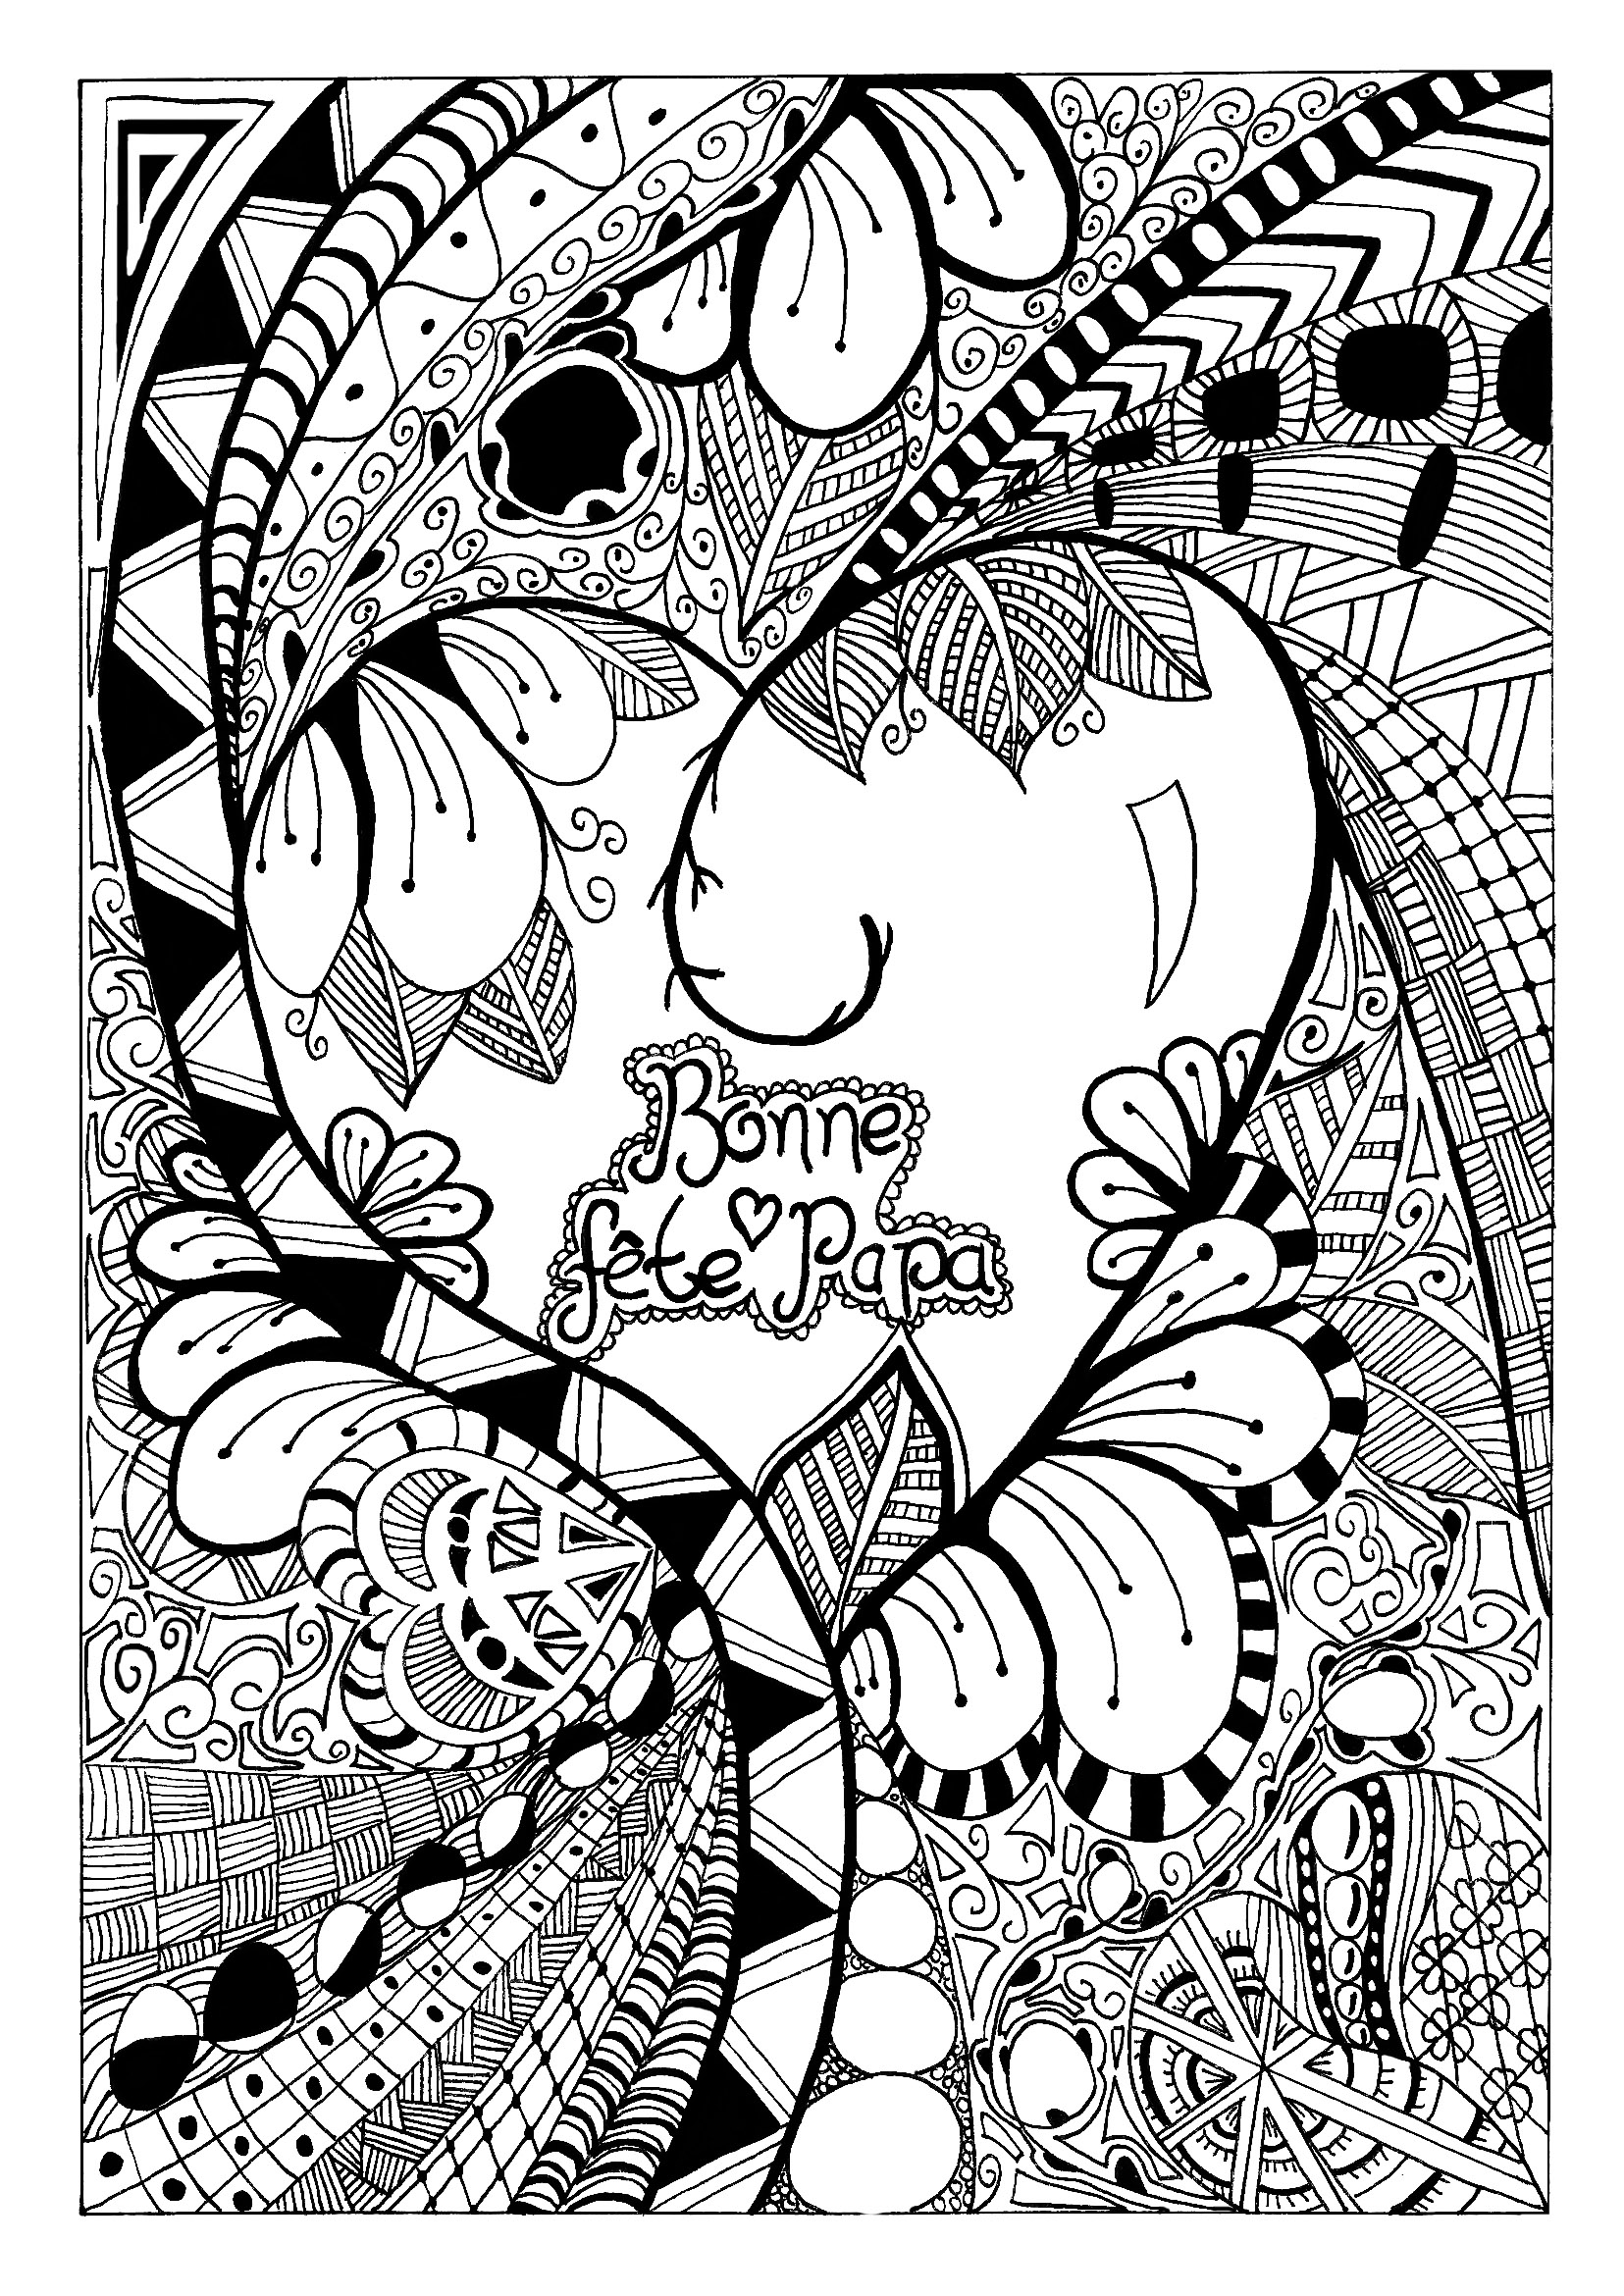 Coloring pages for adults zentangle - A Beautiful Zentangle Coloring Page For Father S Day From The Gallery Events Celebrations